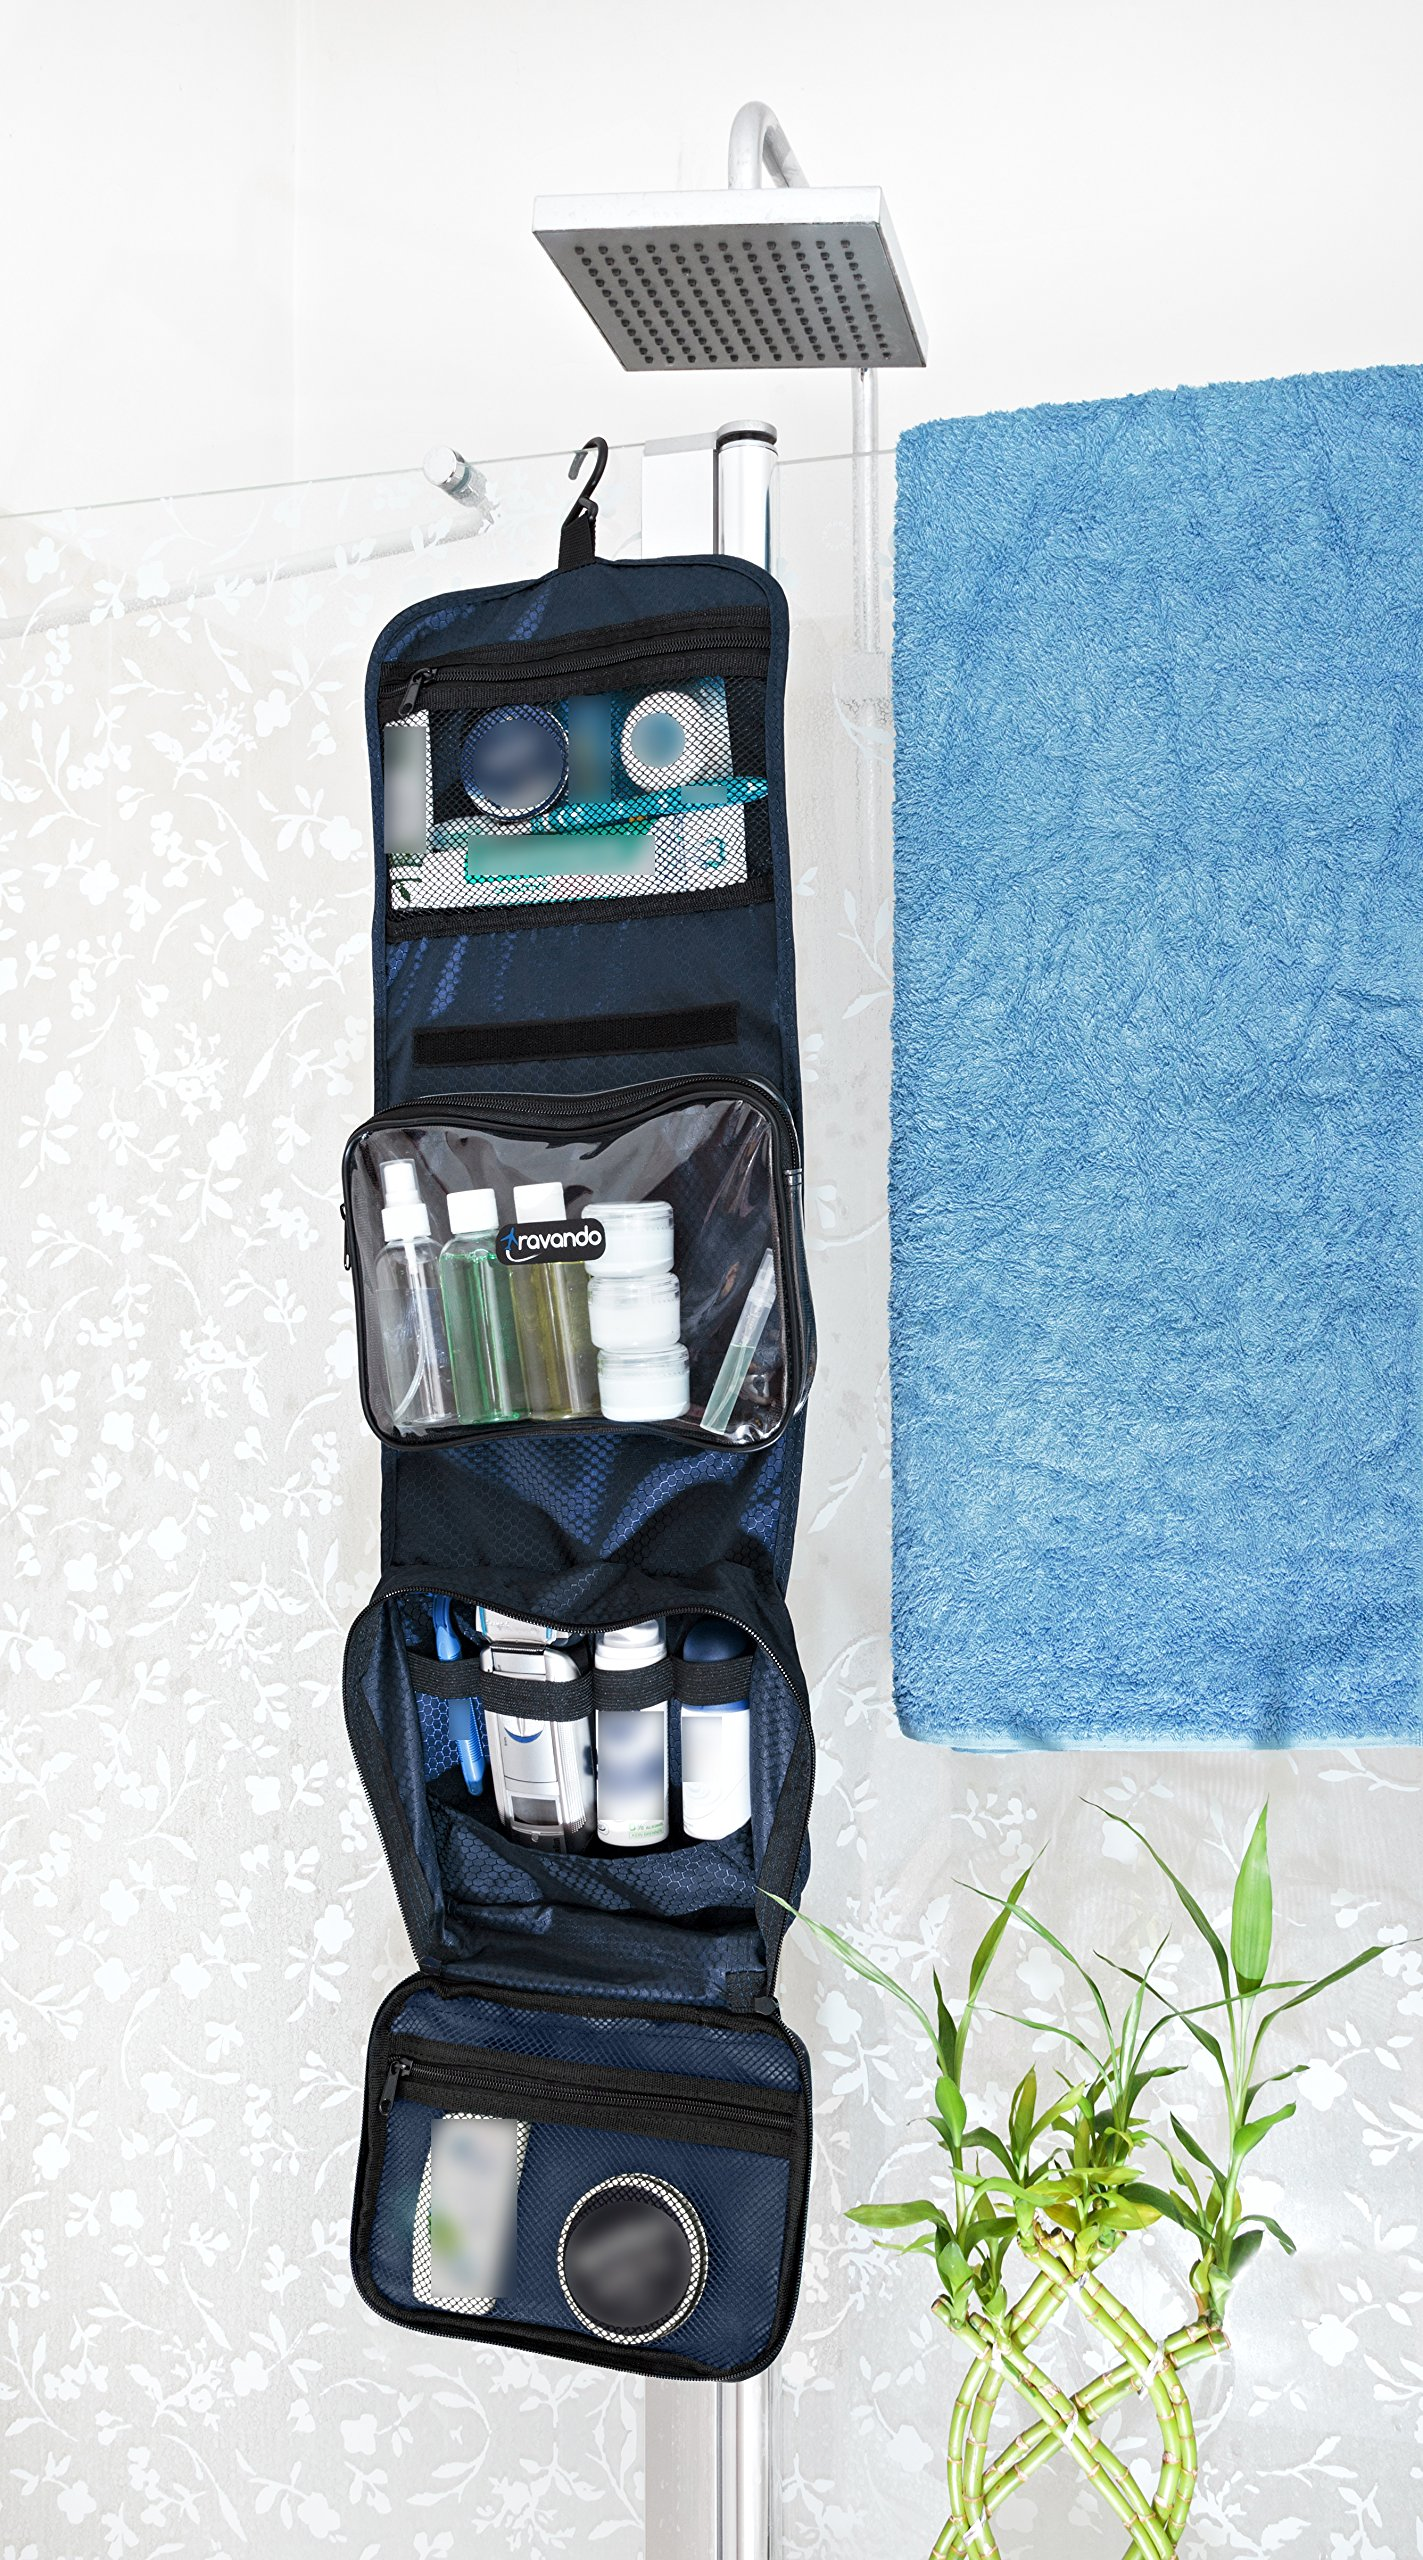 TRAVANDO Hanging Toiletry Bag ''FLEXI'' + 7 Containers for Liquids | Travel Set for Men and Women | Toiletry Kit for Cosmetics, Makeup | Toilet Organiser Suitcase Roll Wash Bag by TRAVANDO (Image #8)